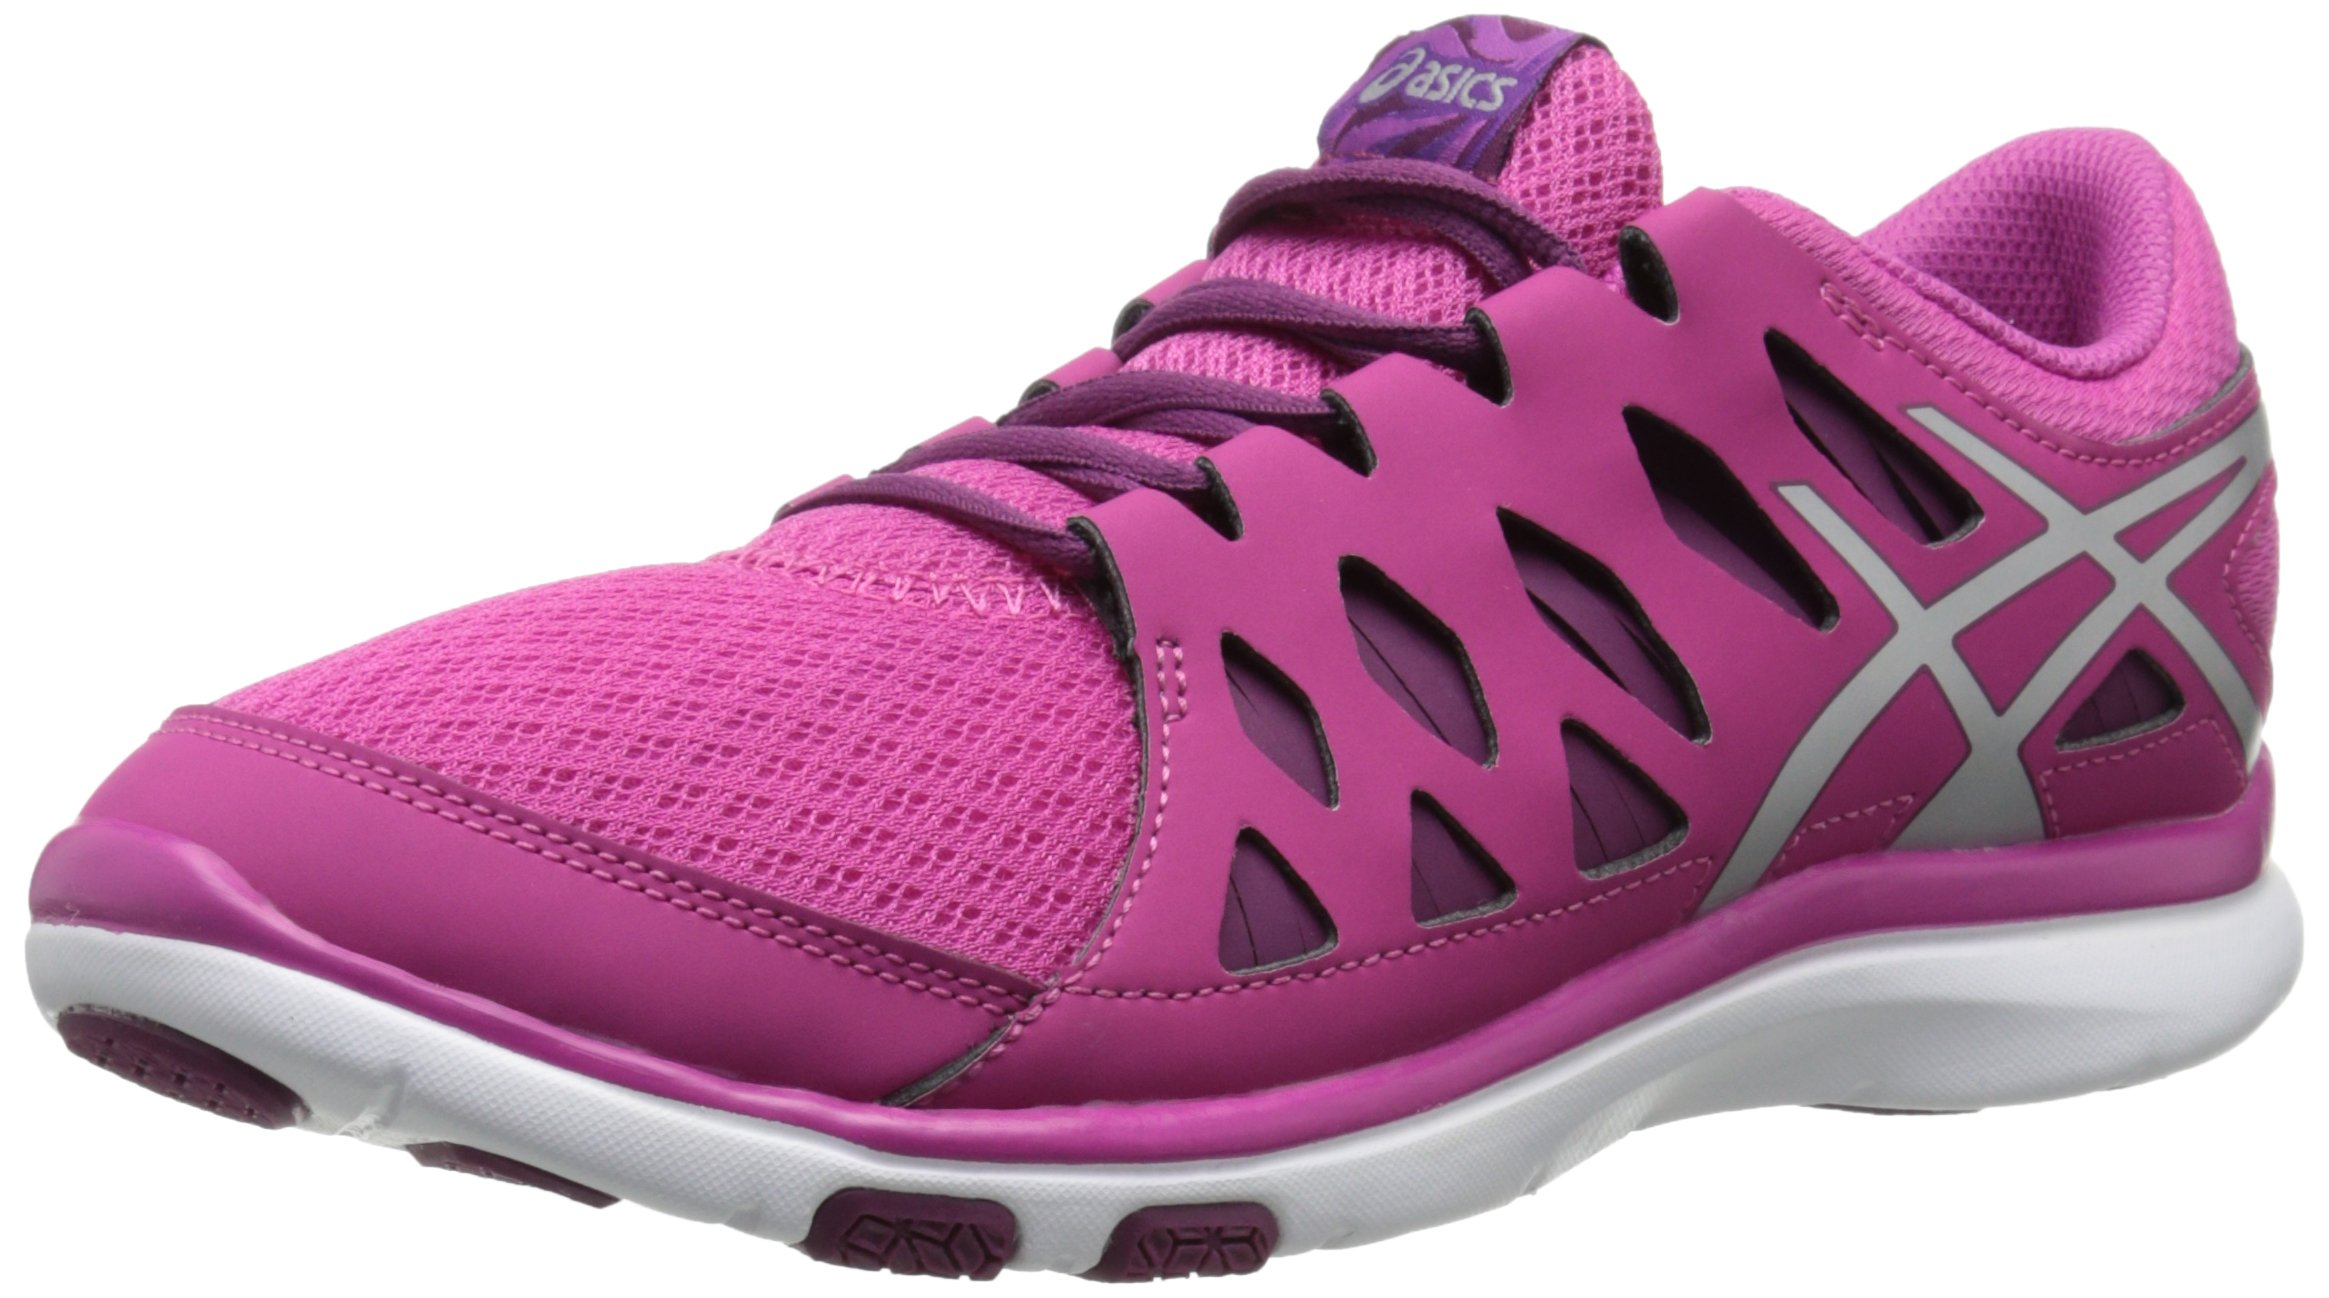 81fhdPa4fNL - ASICS Women's Gel Fit Tempo 2 Fitness Shoe